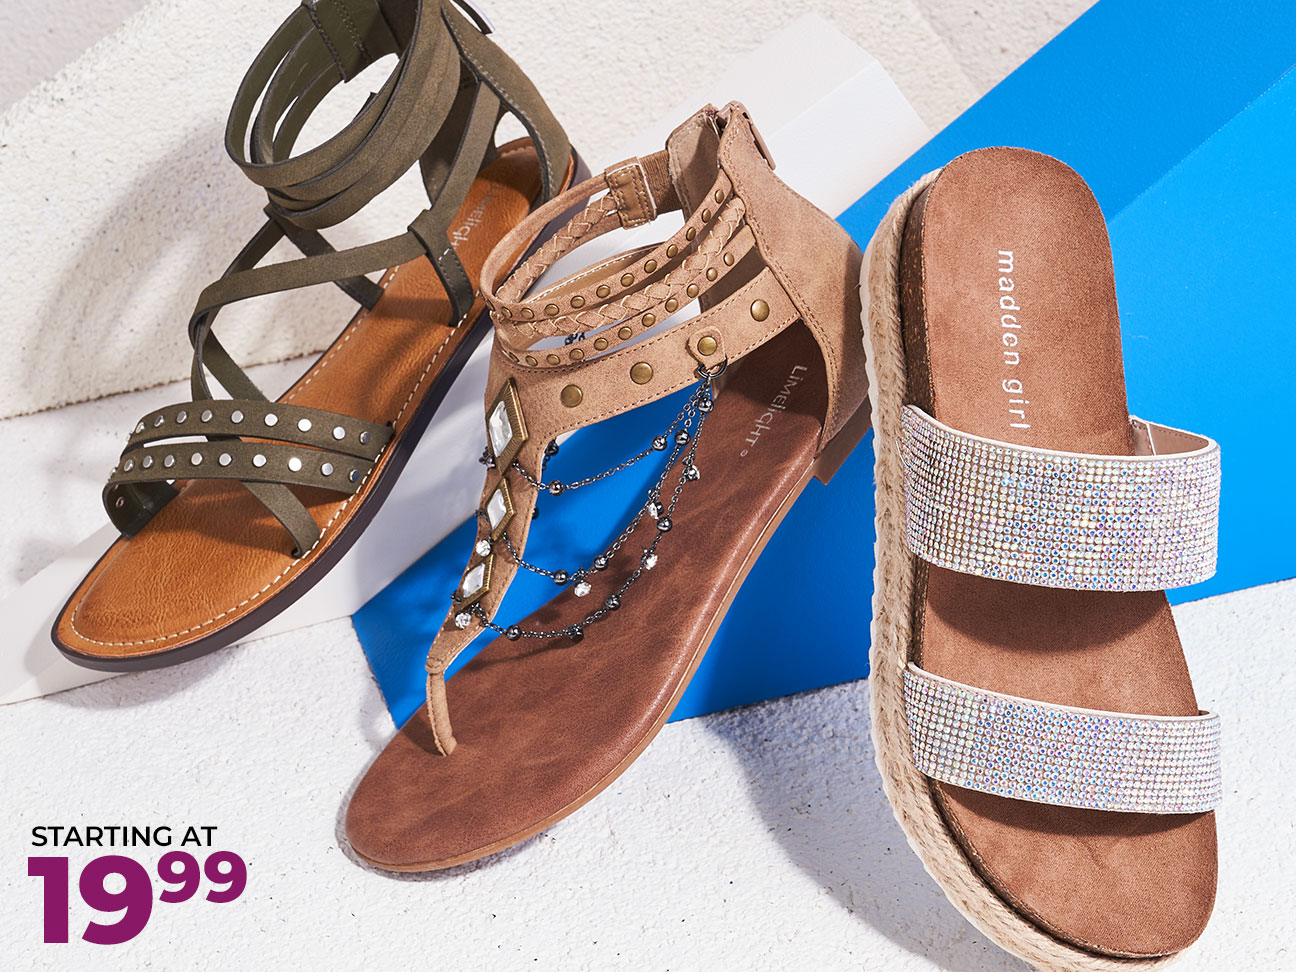 assorted limelight and madden girl sandals starting at $19.99